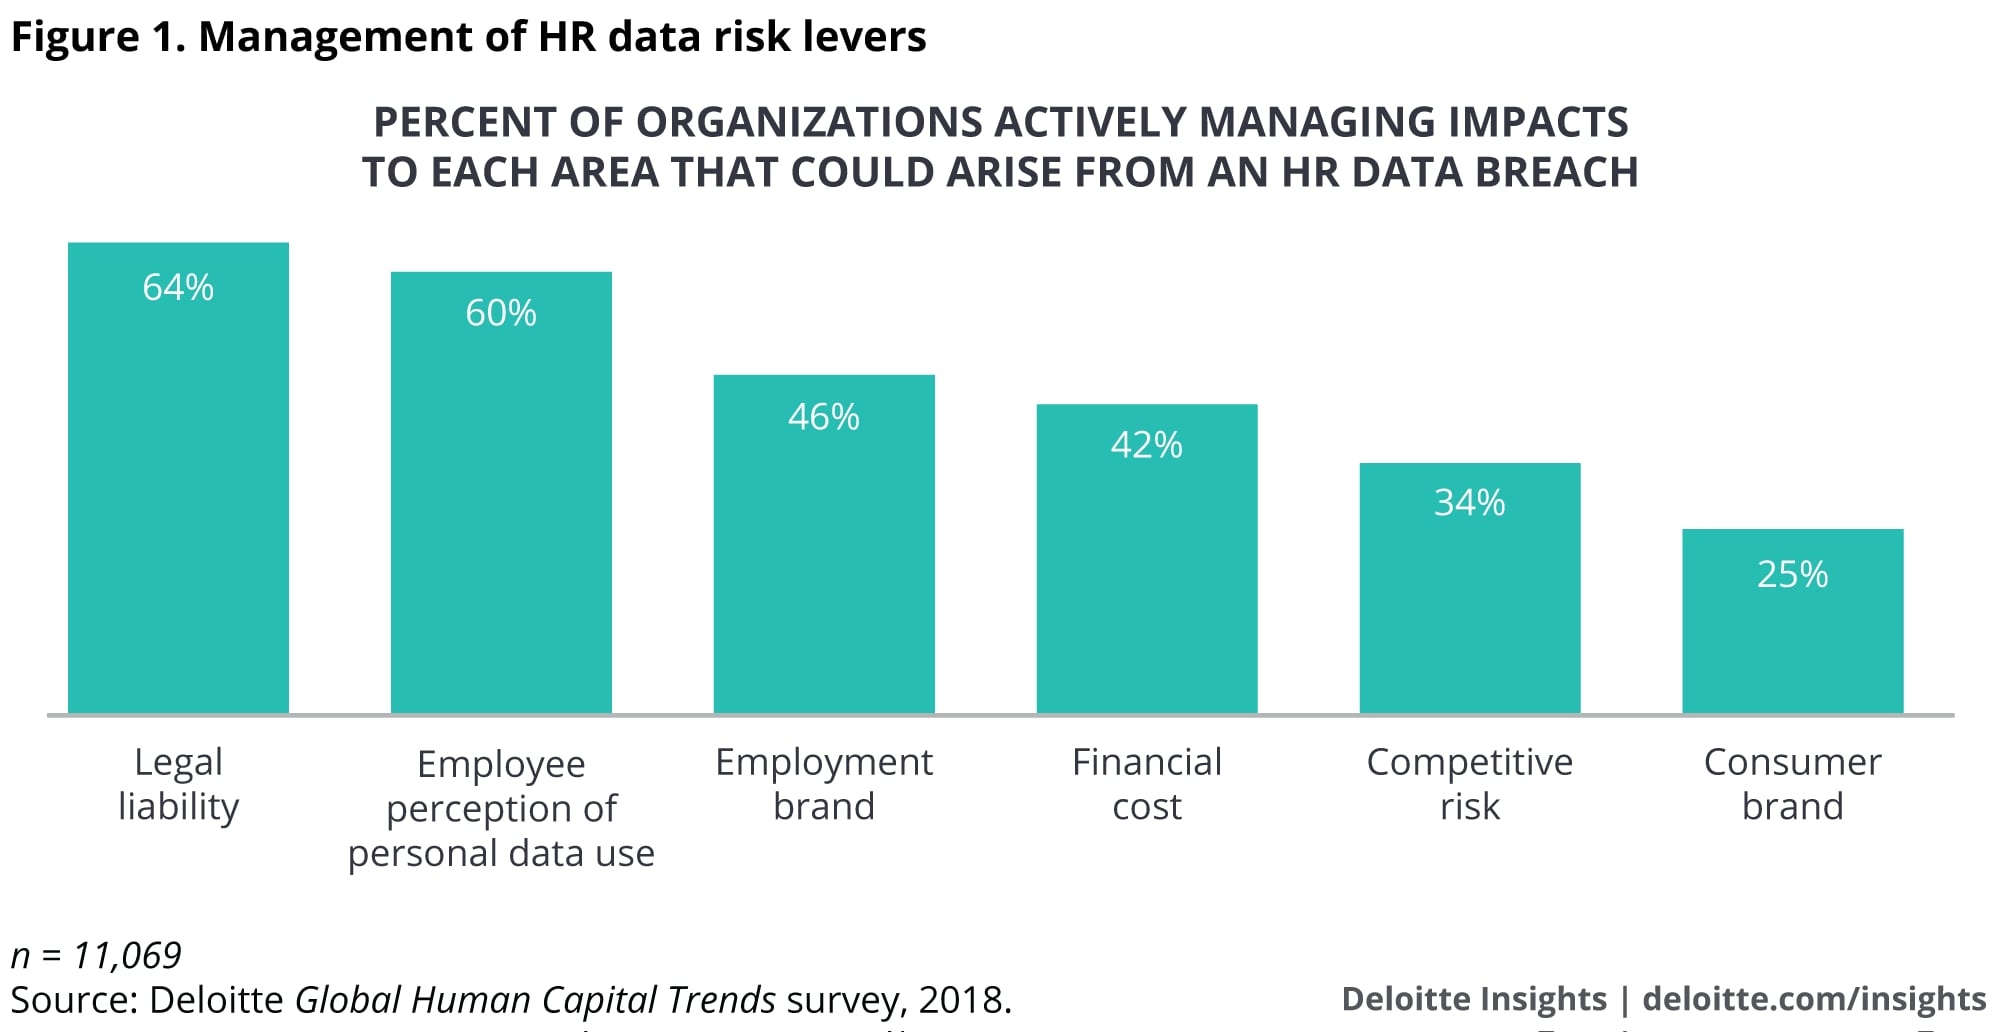 Management of HR data risk levers